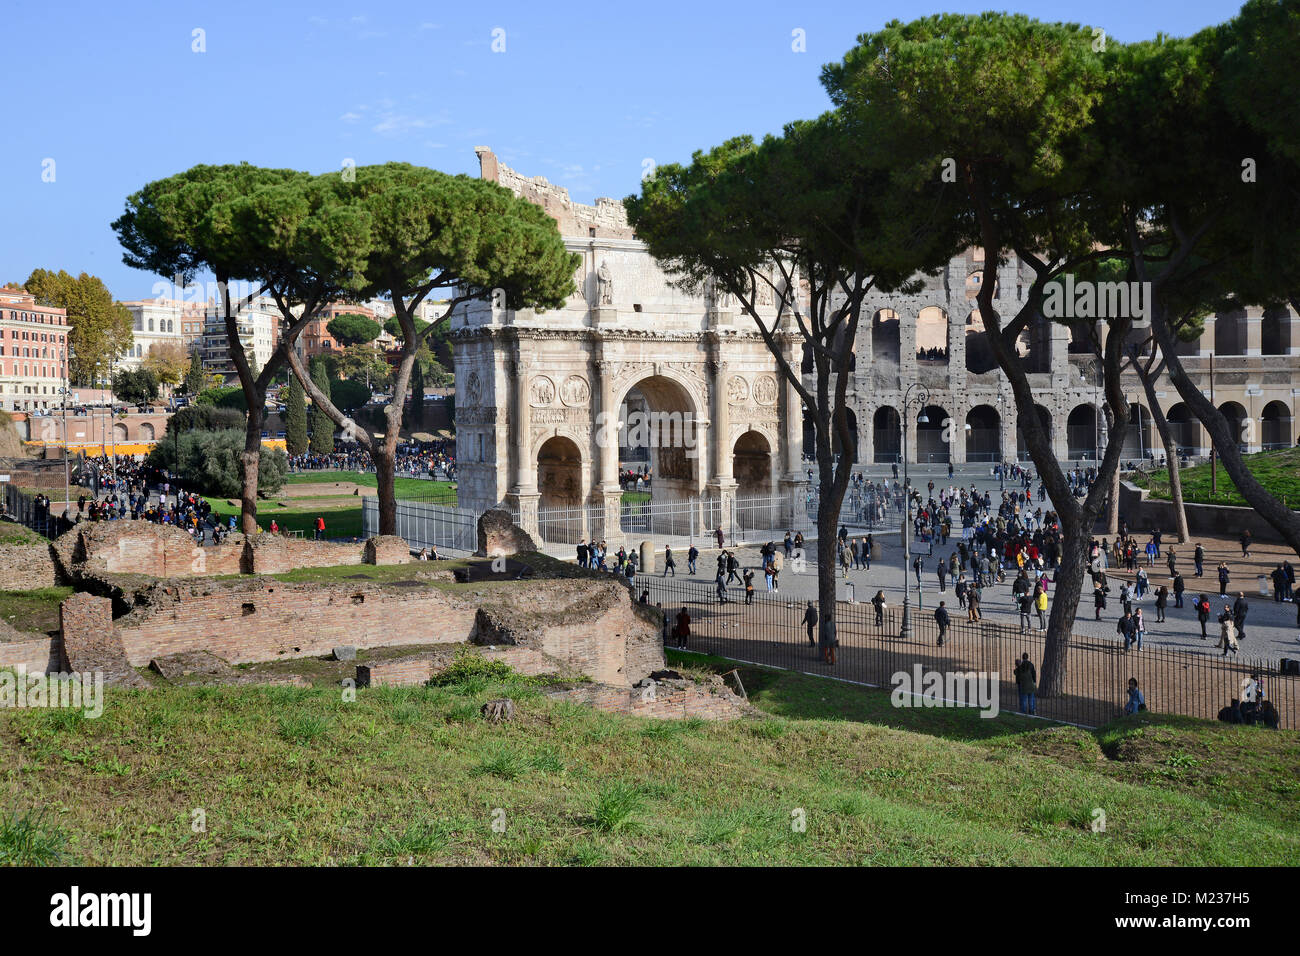 The Archway of Constantine with the Colosseum behind with crowds of tourists surrounding it, seen from the lower - Stock Image